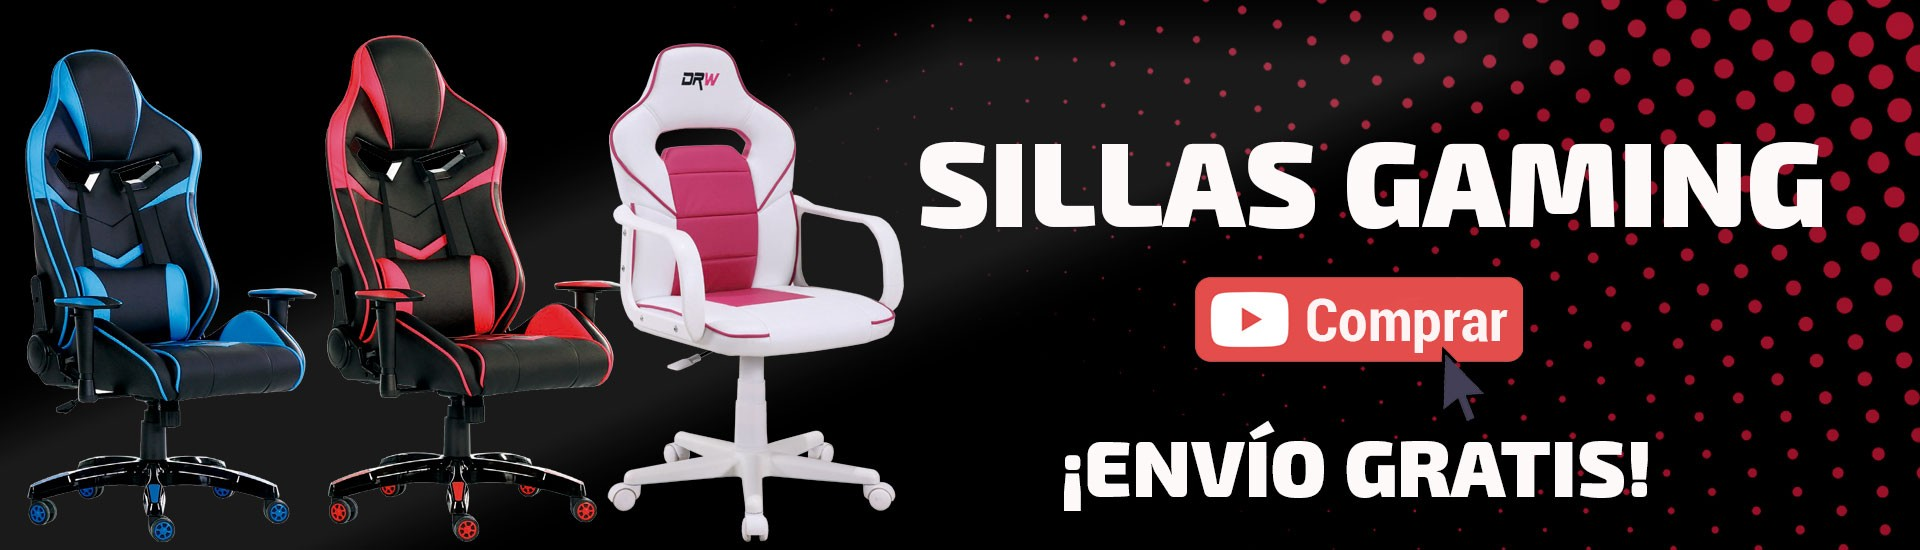 Sillas gaming Mercaoficina